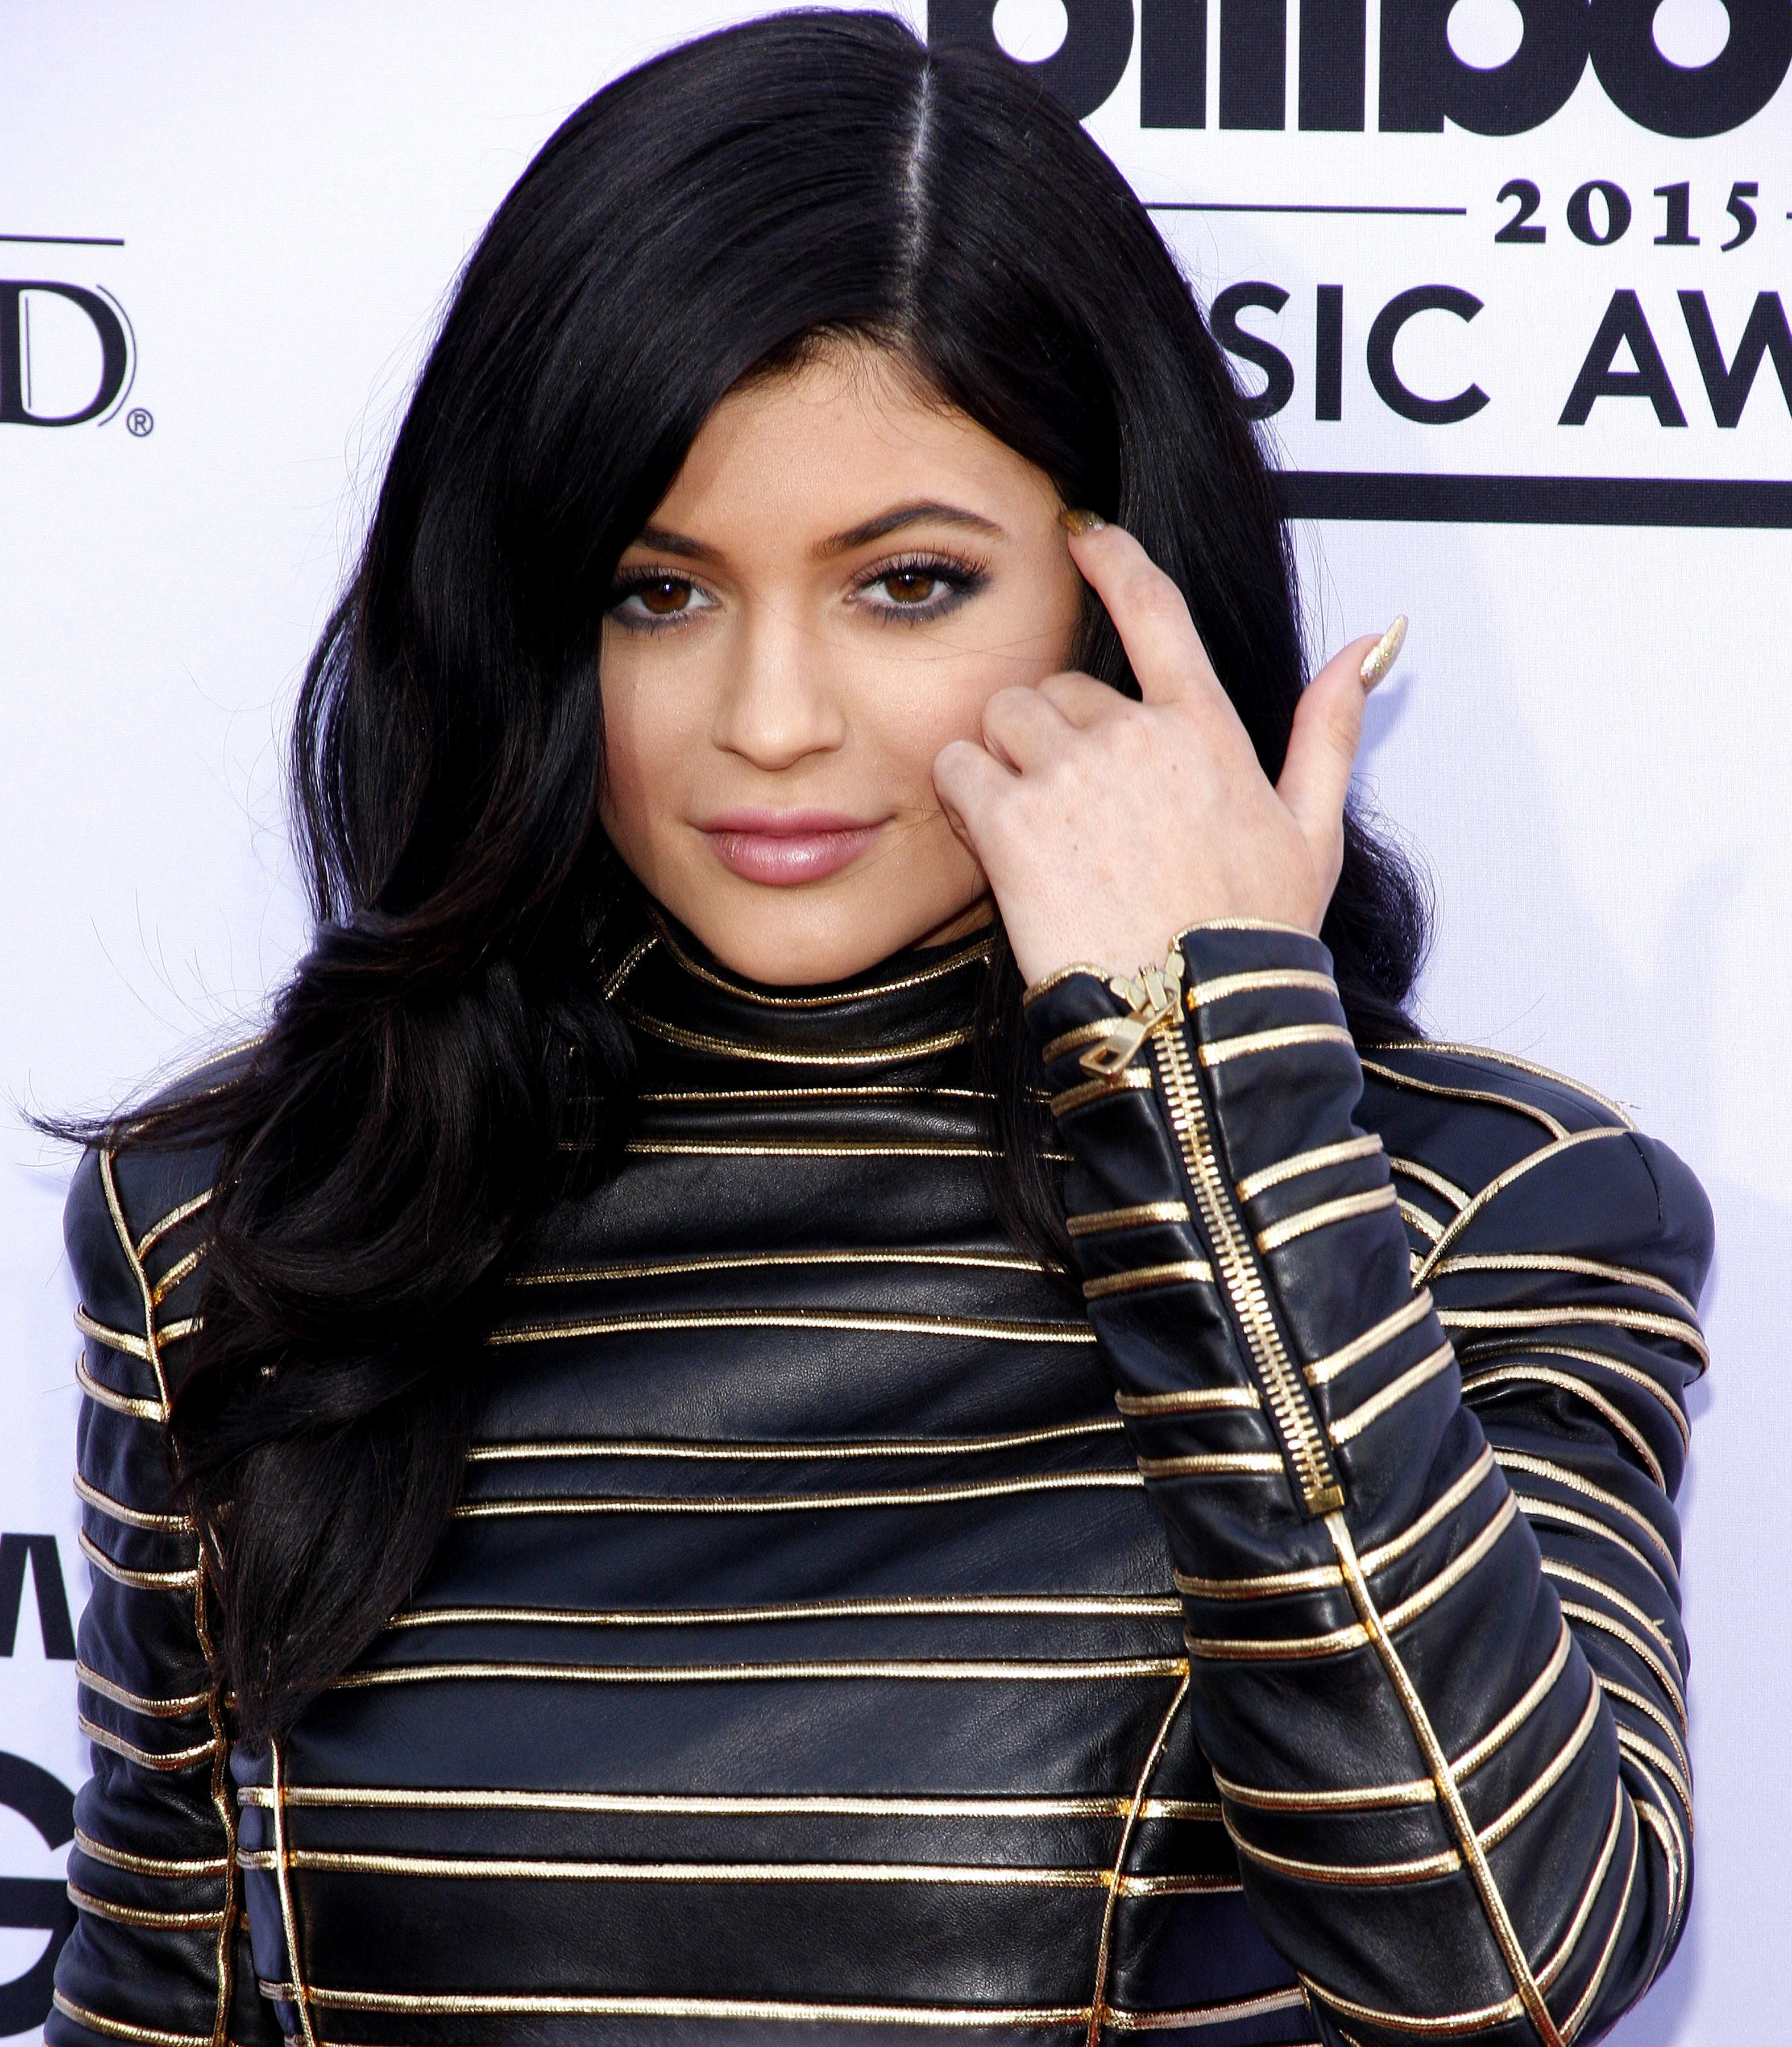 A Video Of Kylie Showering With Tyga For Some Reason